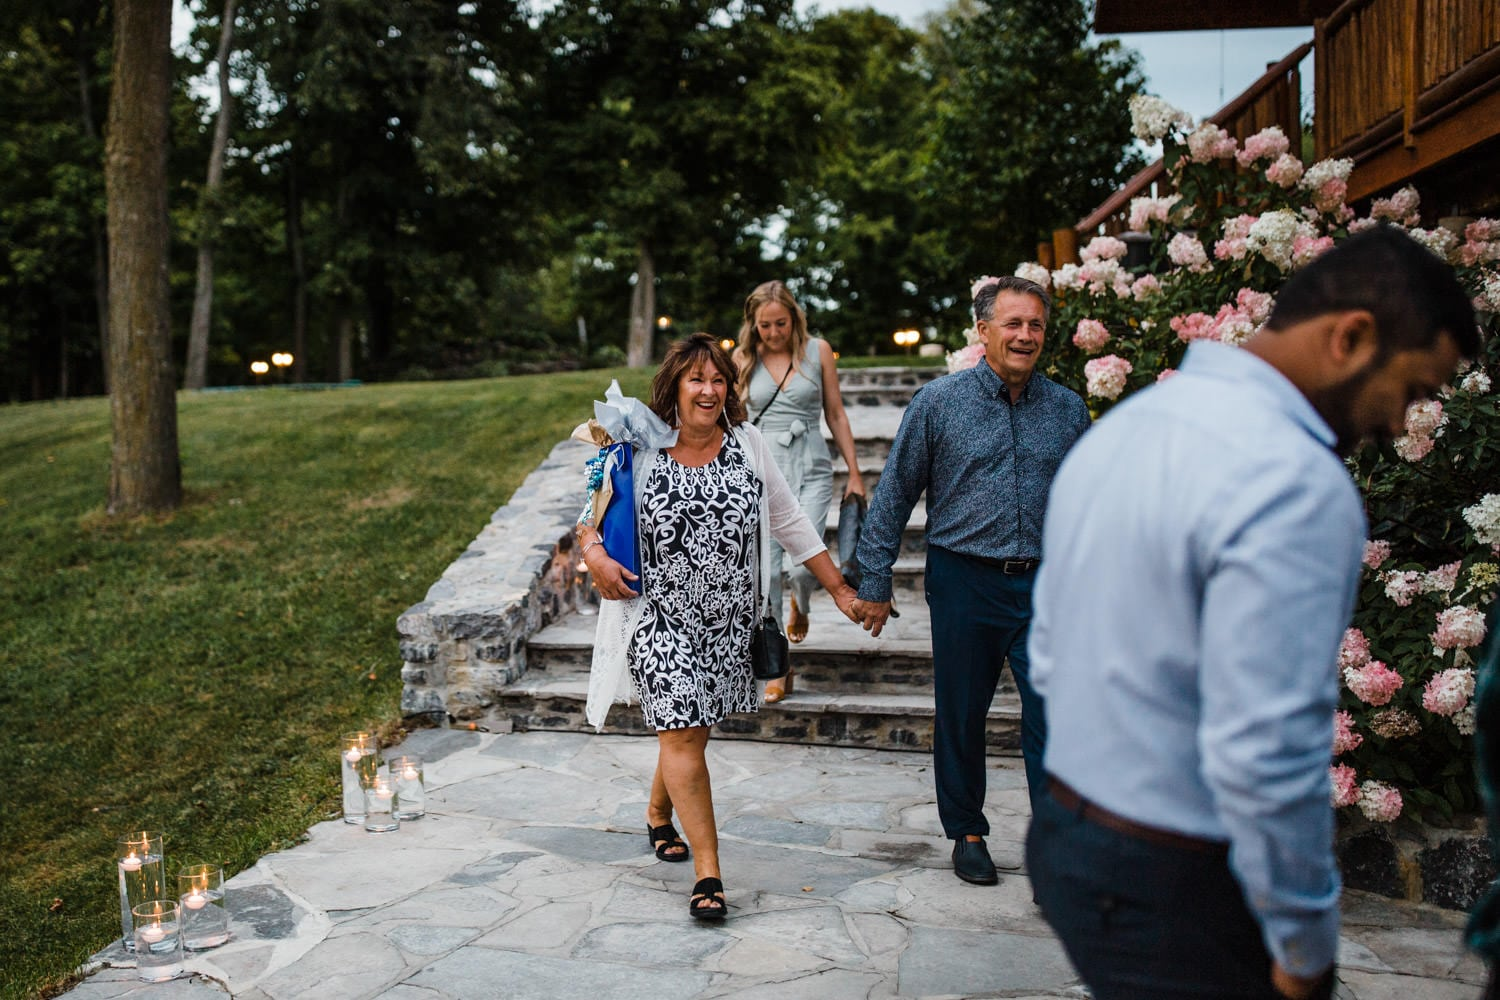 guests arrive to wedding reception and look surprised